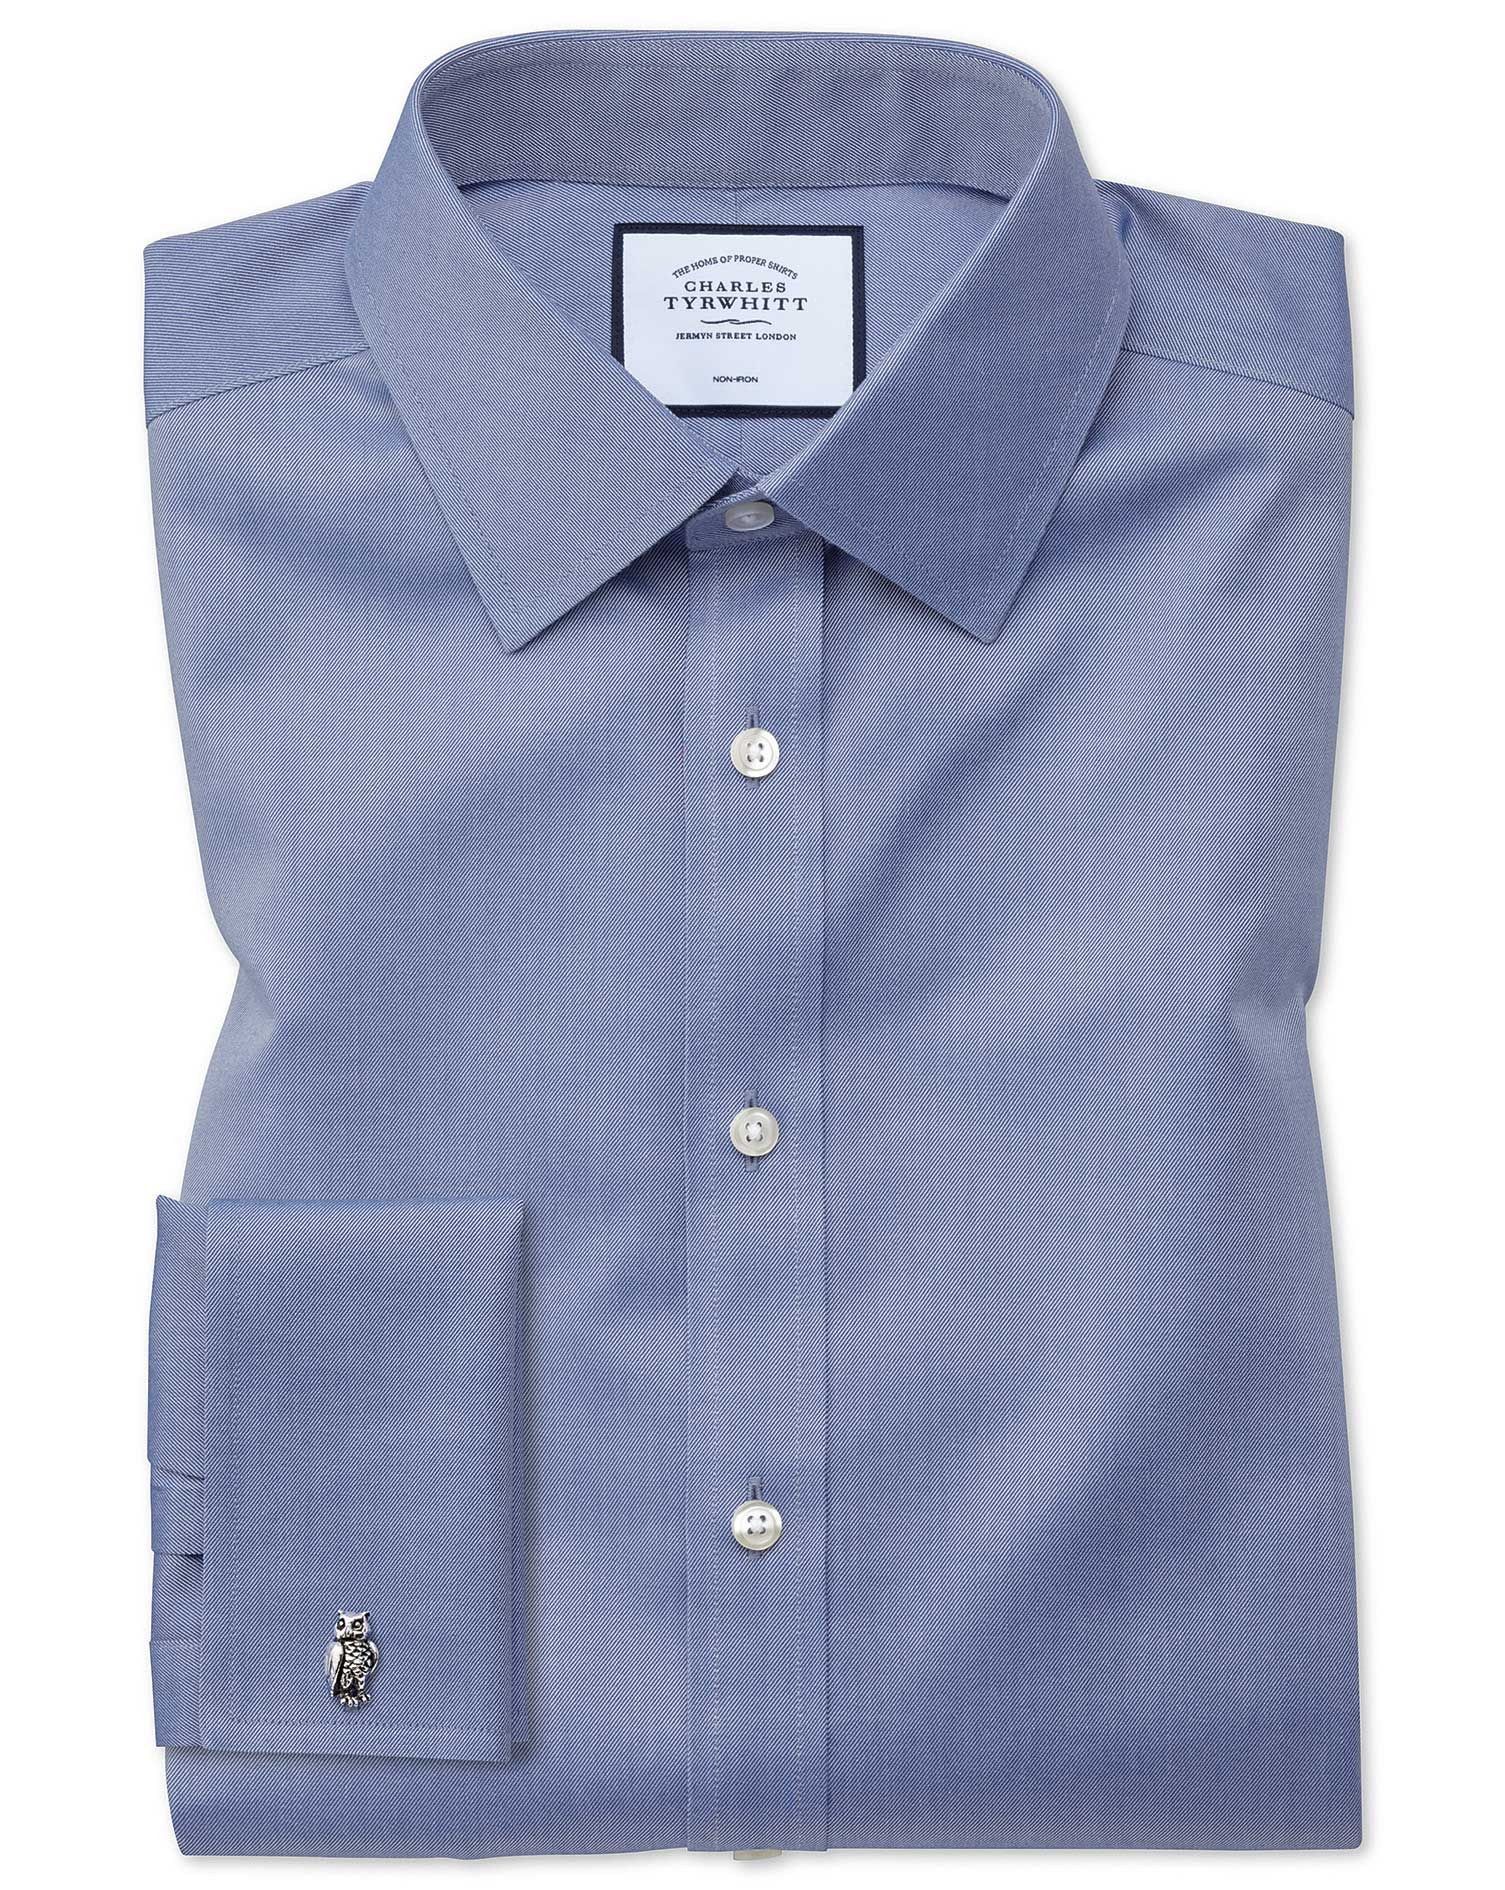 Slim Fit Non-Iron Twill Mid Blue Cotton Formal Shirt Single Cuff Size 15.5/32 by Charles Tyrwhitt